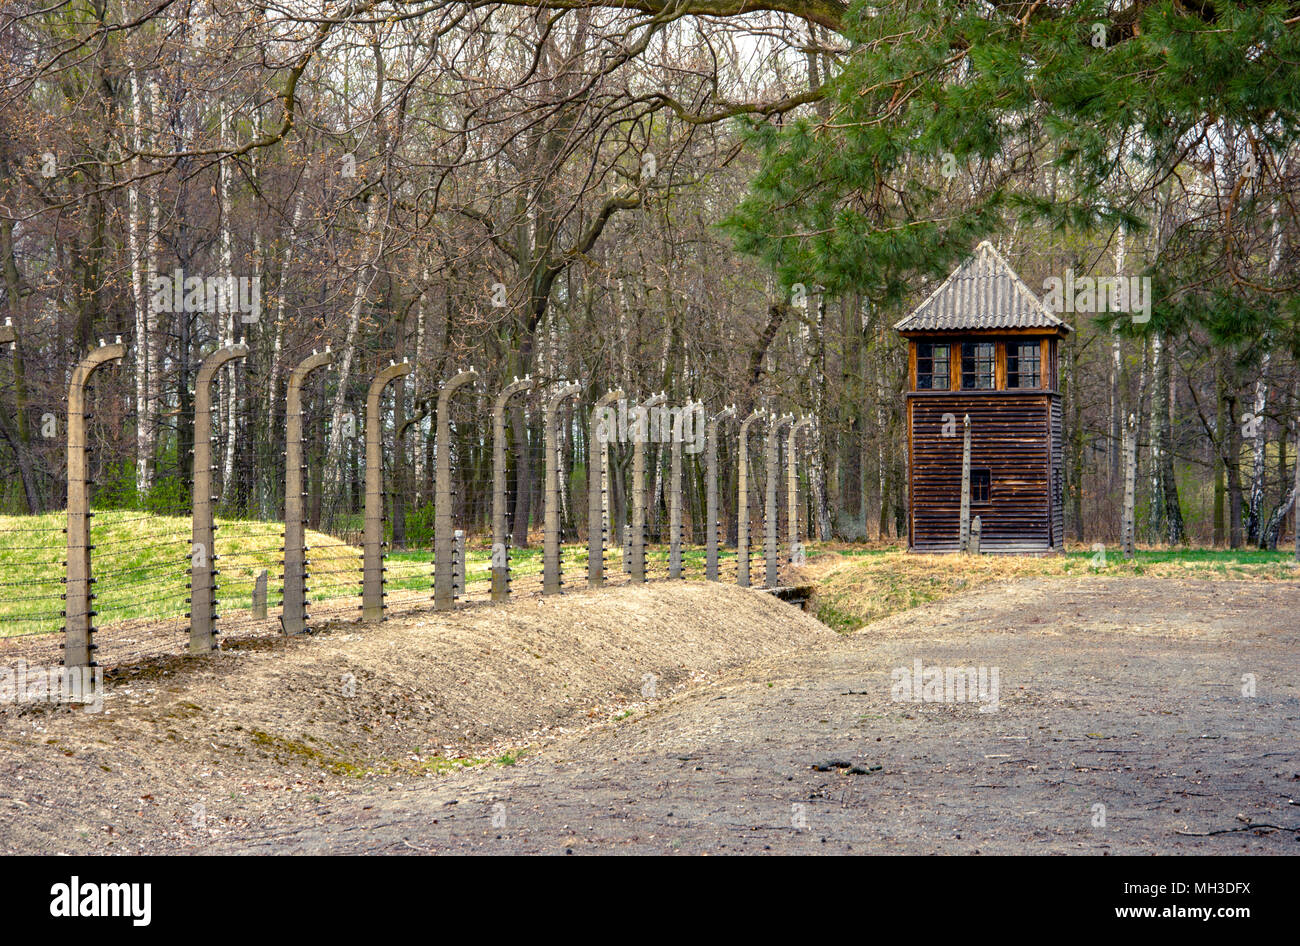 Electric barbed wires of the German nazi concentration and extermination camp world heritage Auschwitz Birkenau, Poland - Stock Image